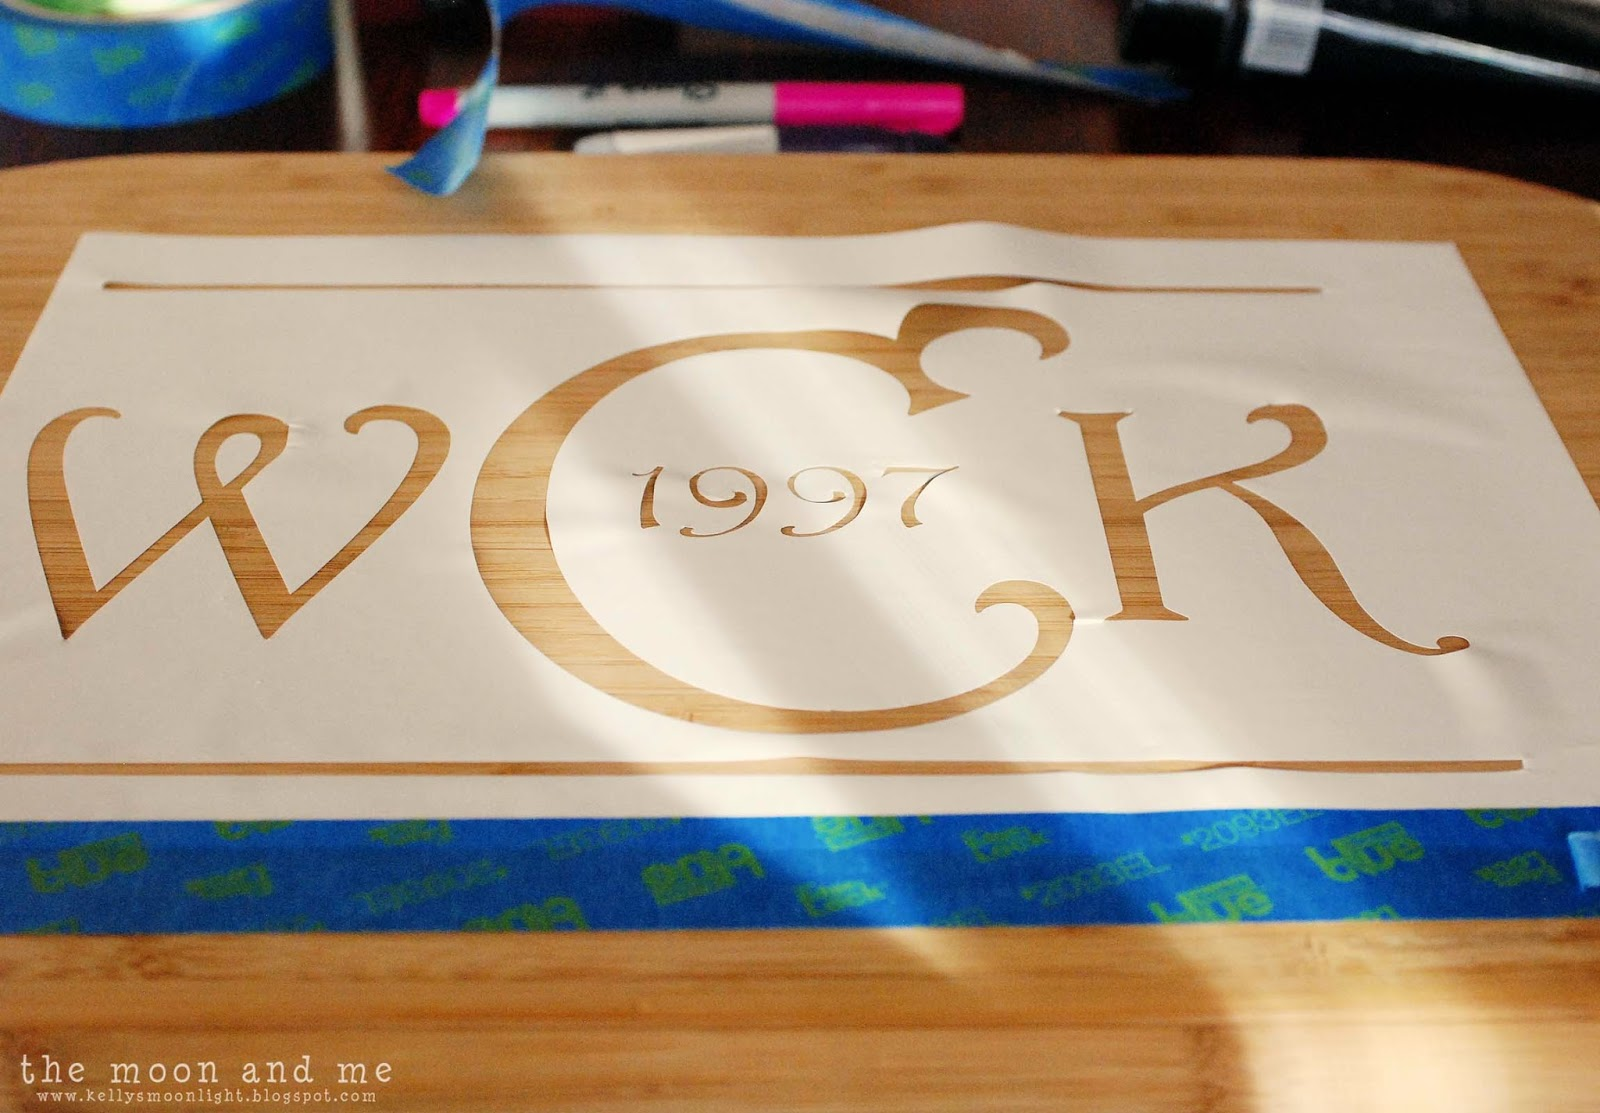 the moon and me diy personalized cutting board, Kitchen design